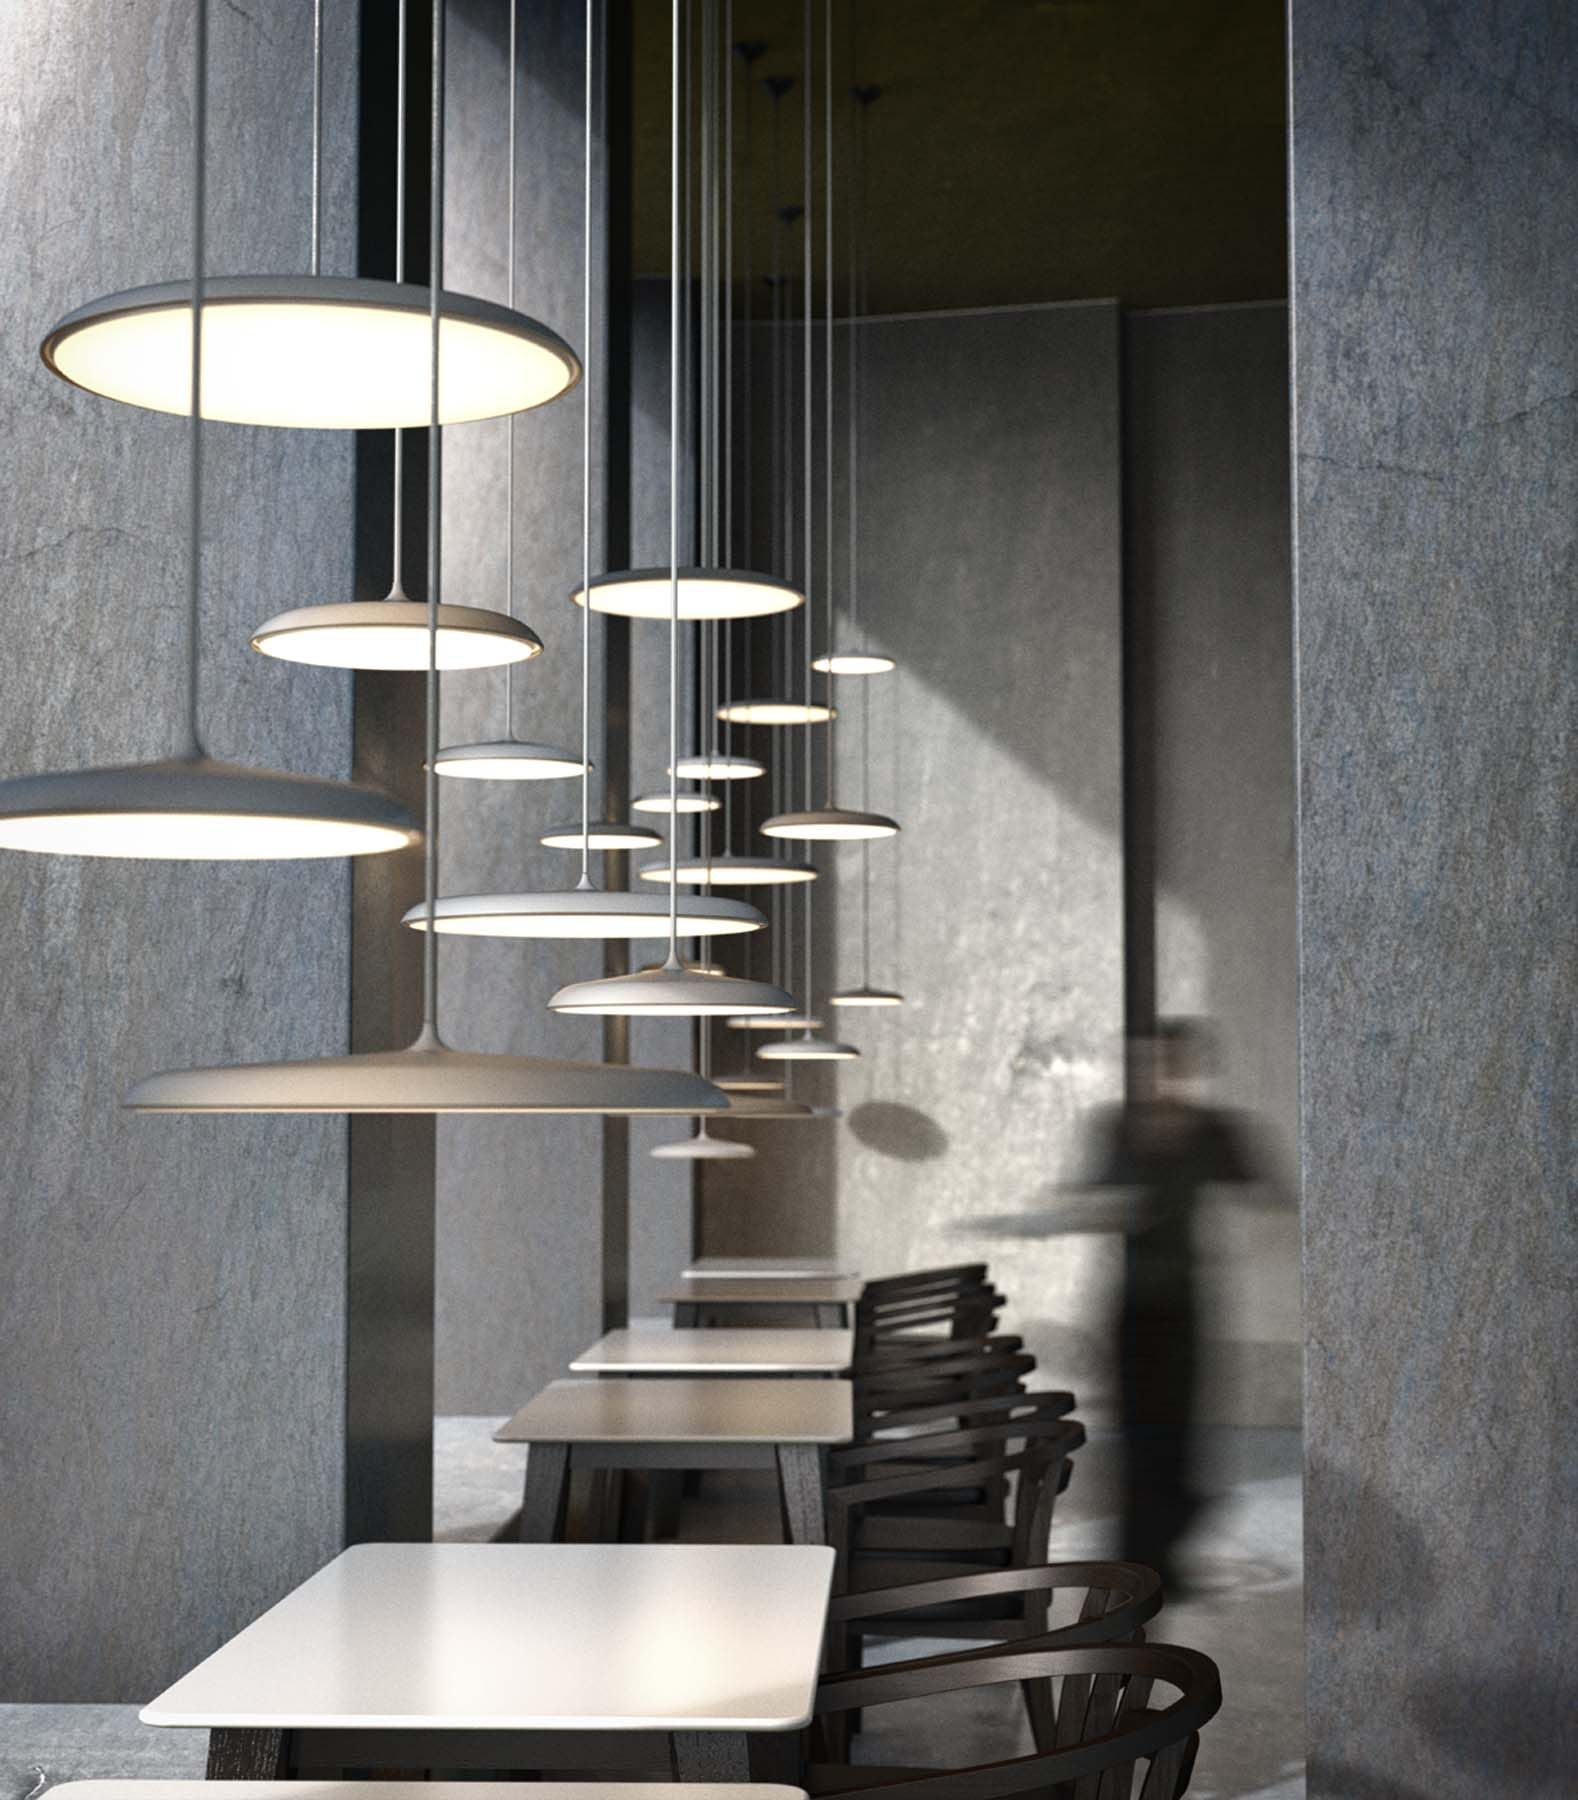 Artist | Pendant from Nordlux | Designed by Bønnelycke mdd | Nordic and Scandinavian style | Produced in grey metal with textile cord | Light | Decoration | Designed in Denmark